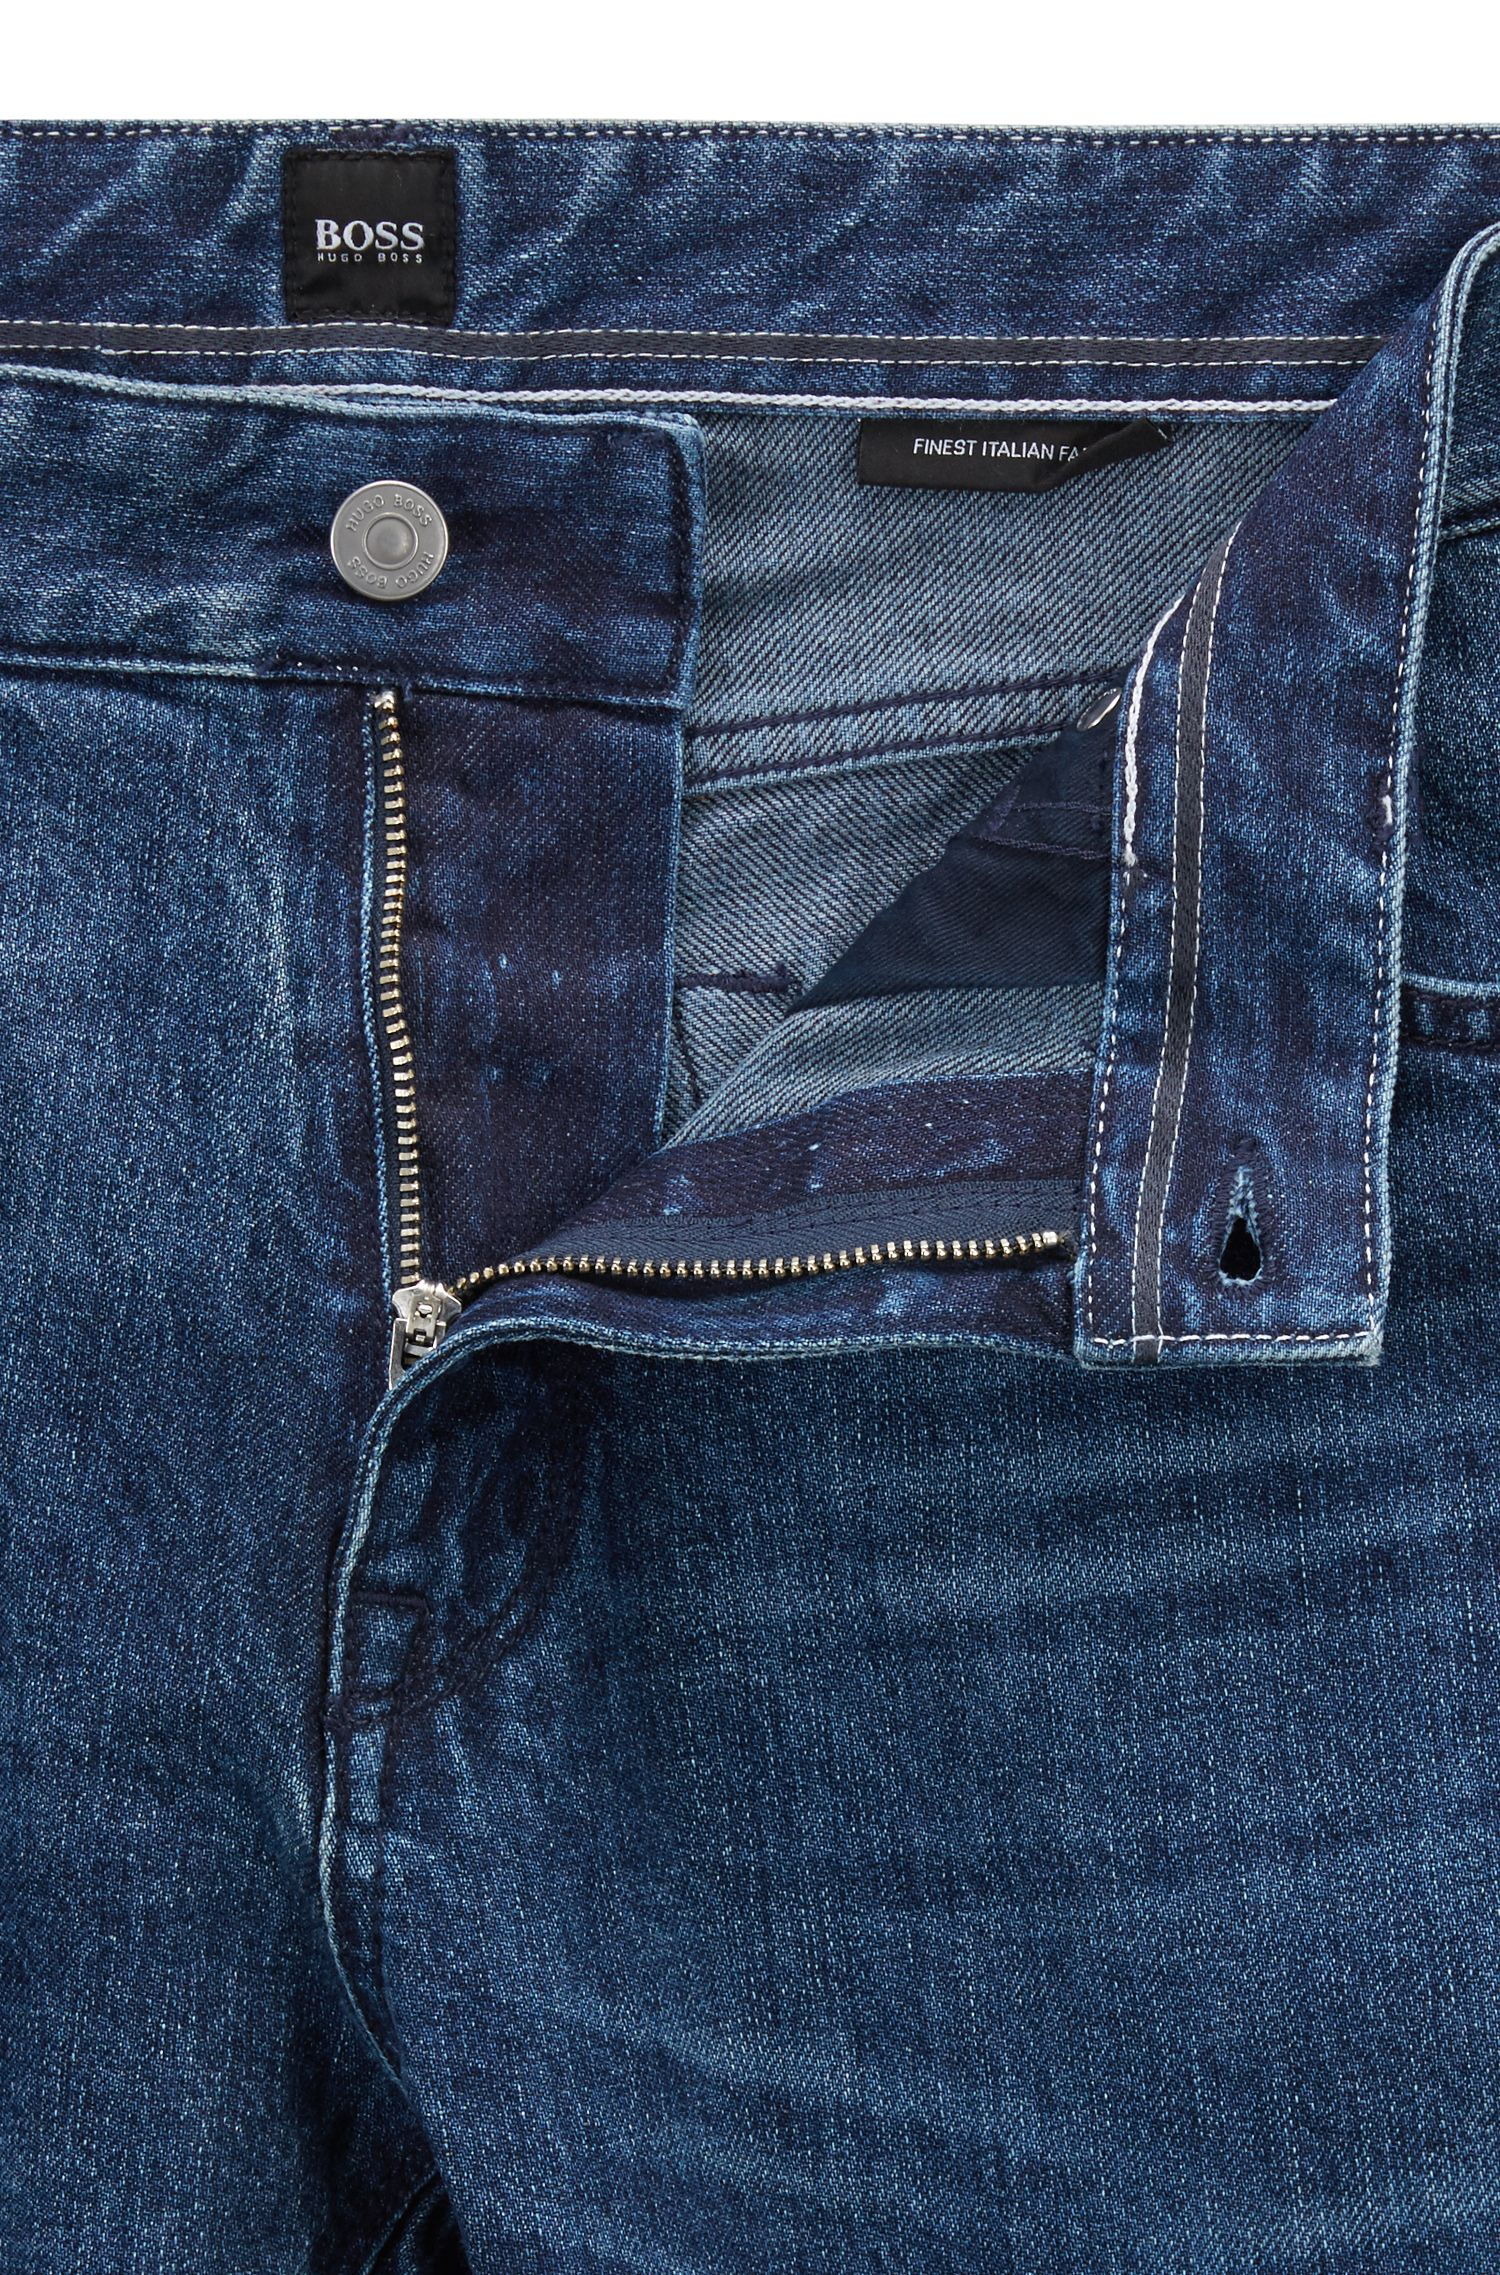 Vaqueros regular fit en denim de algodón reciclado italiano, Azul